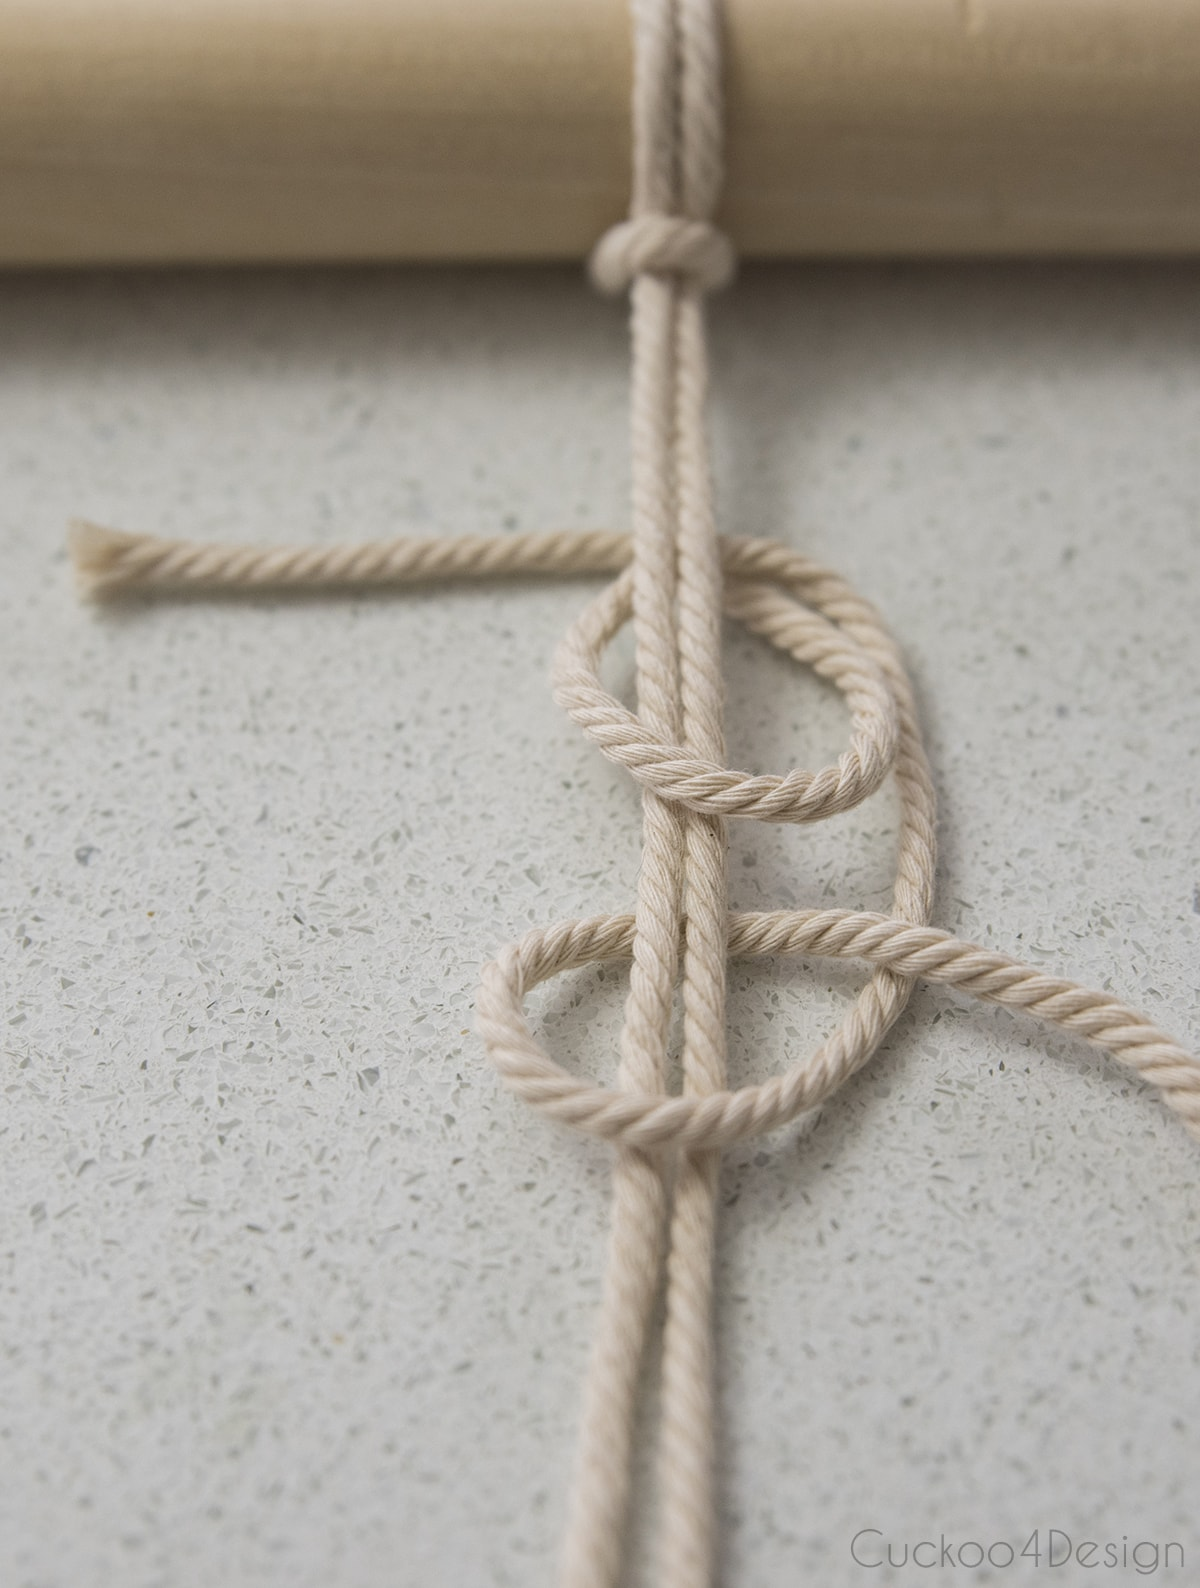 double half hitch knot or vertical clove hitch knot for macrame planter